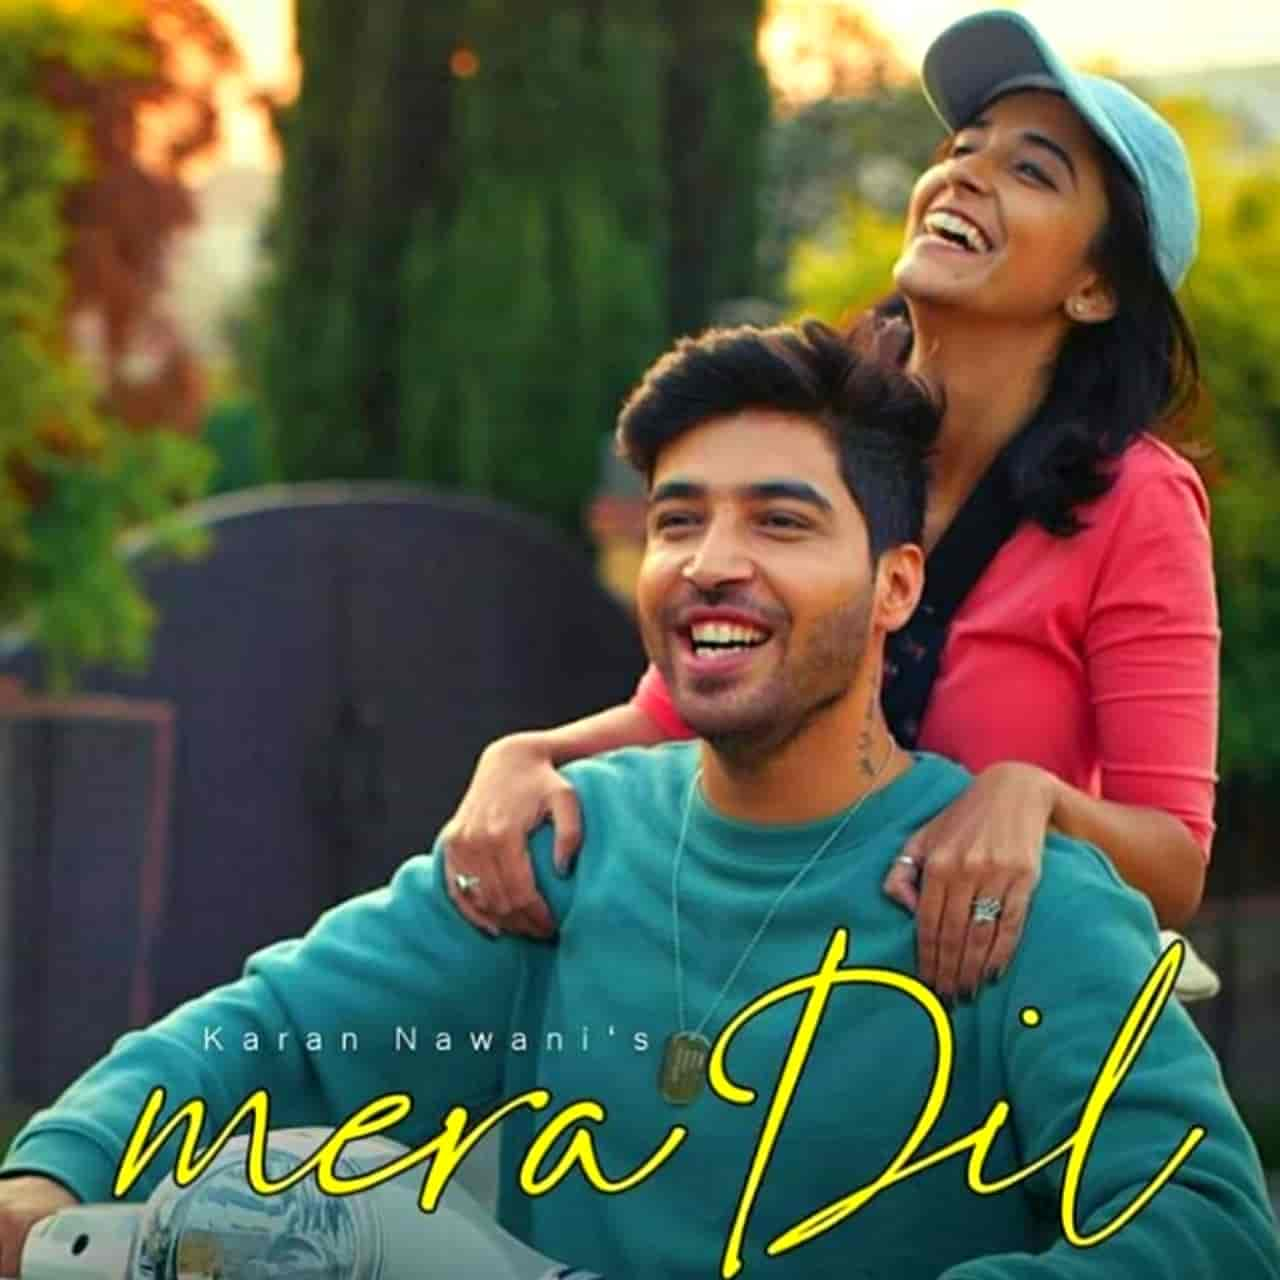 A very beautiful love song which is titled Mera Dil has released sung in the melodious voice of Karan Nawani.